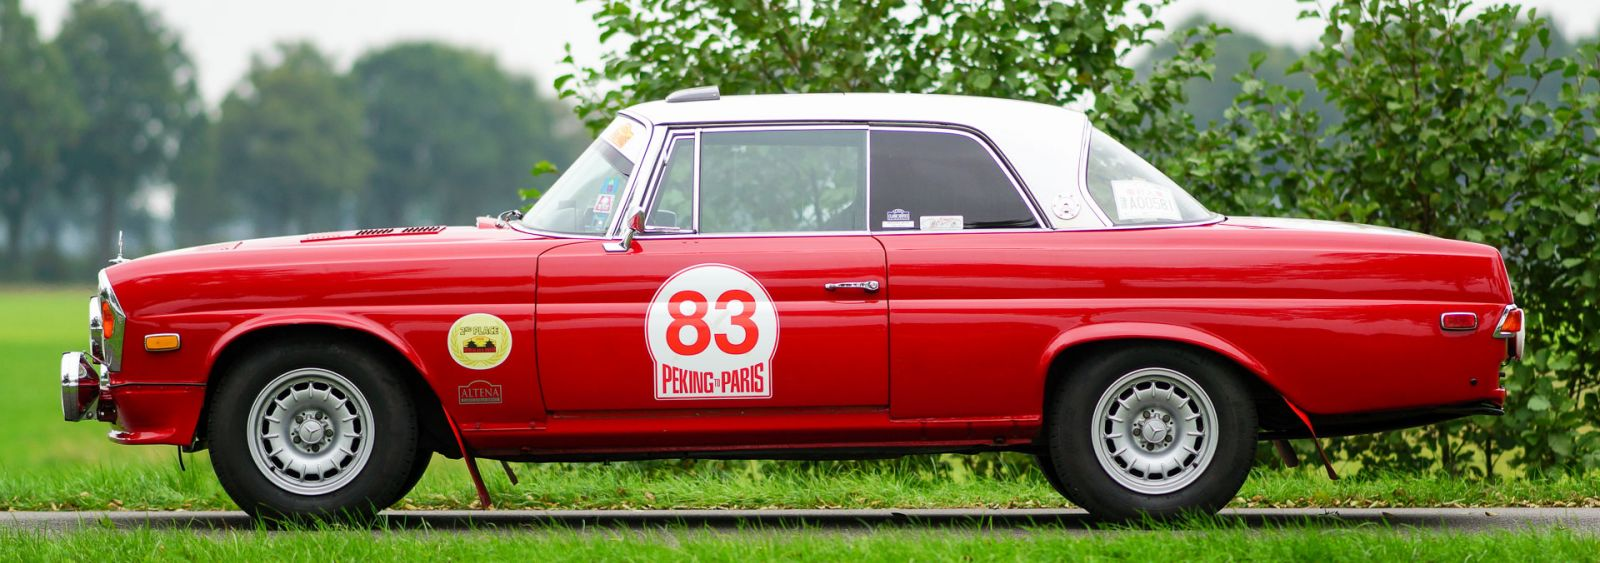 Mercedes-Benz 280 SE 3.5 rally car, 1970 - Welcome to ClassiCarGarage